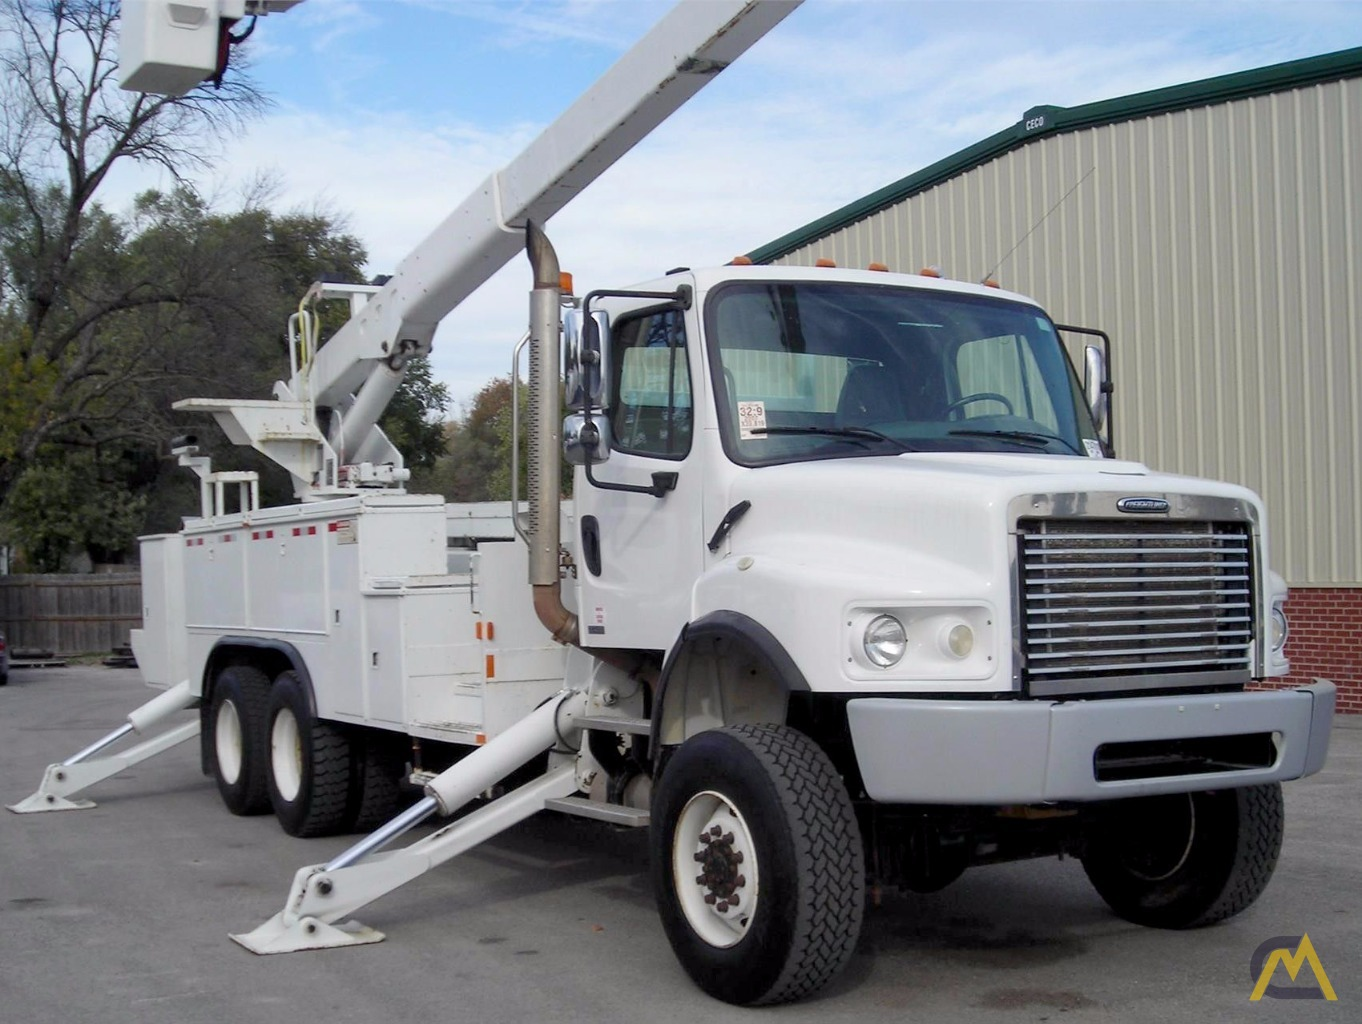 90' Lift-All LM-75/90-2MS Articulating Boom Lift SOLD